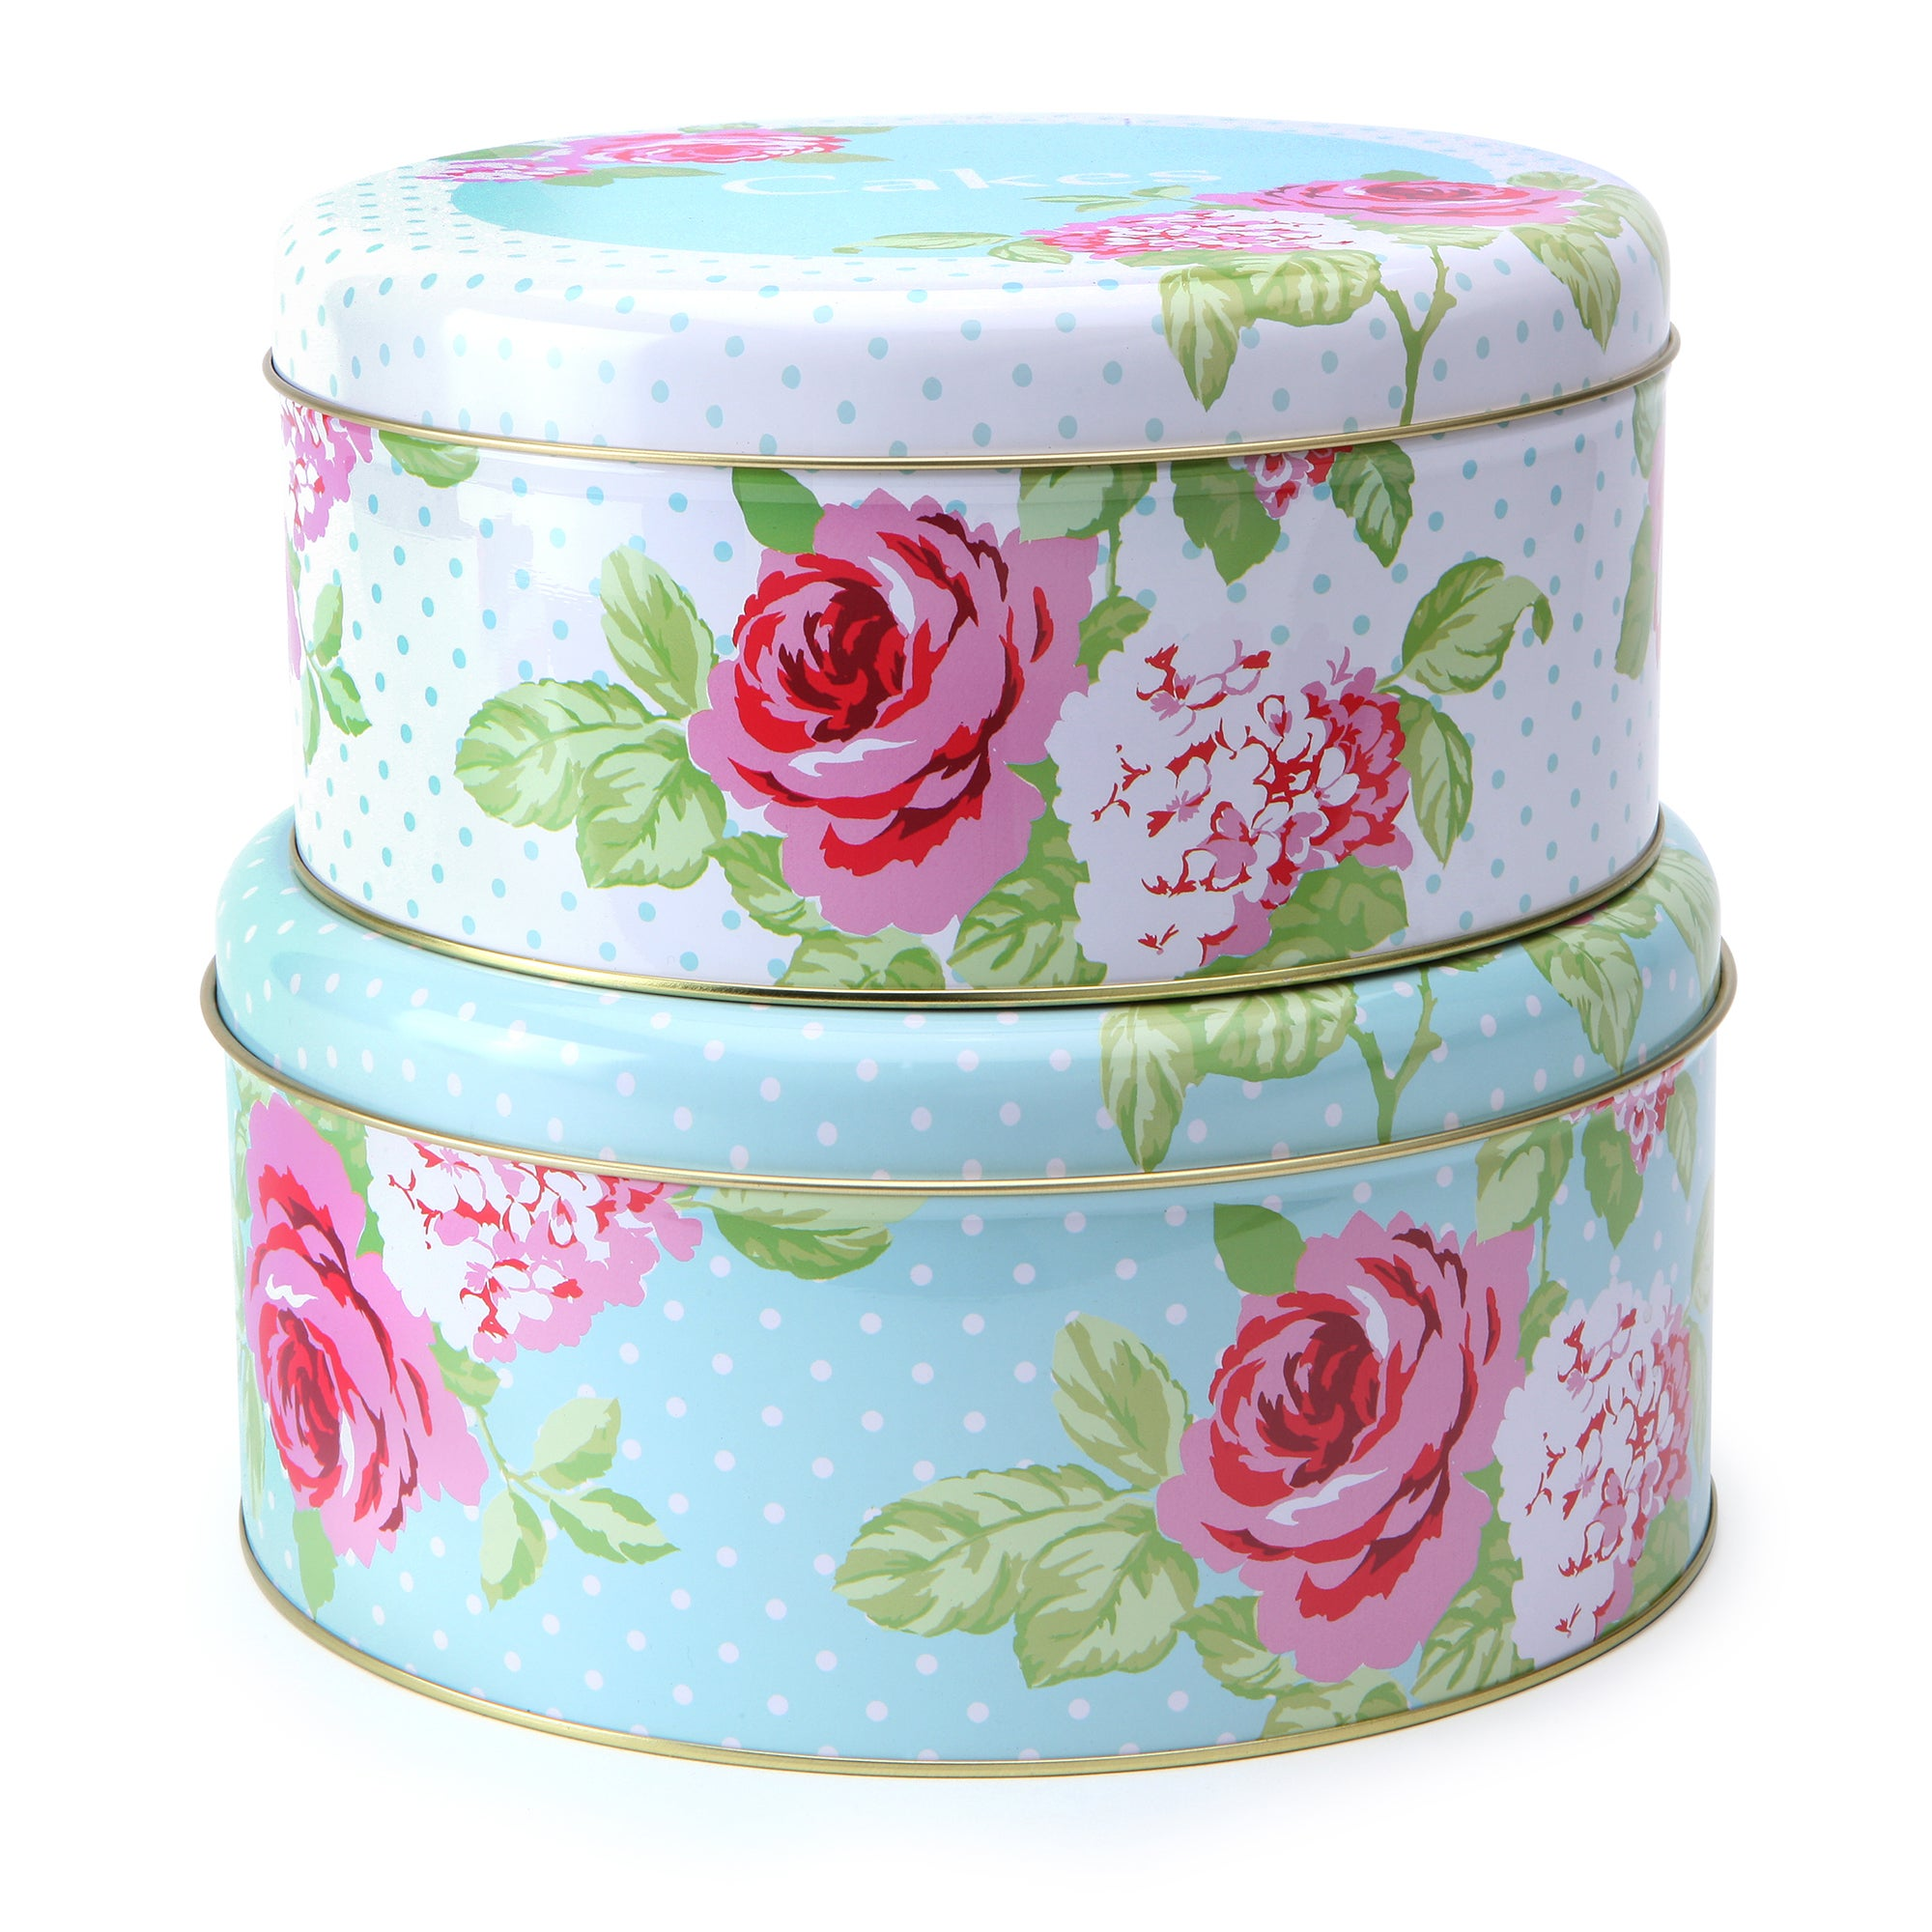 Rose and Ellis Clarendon Collection Set of Two Cake Tins